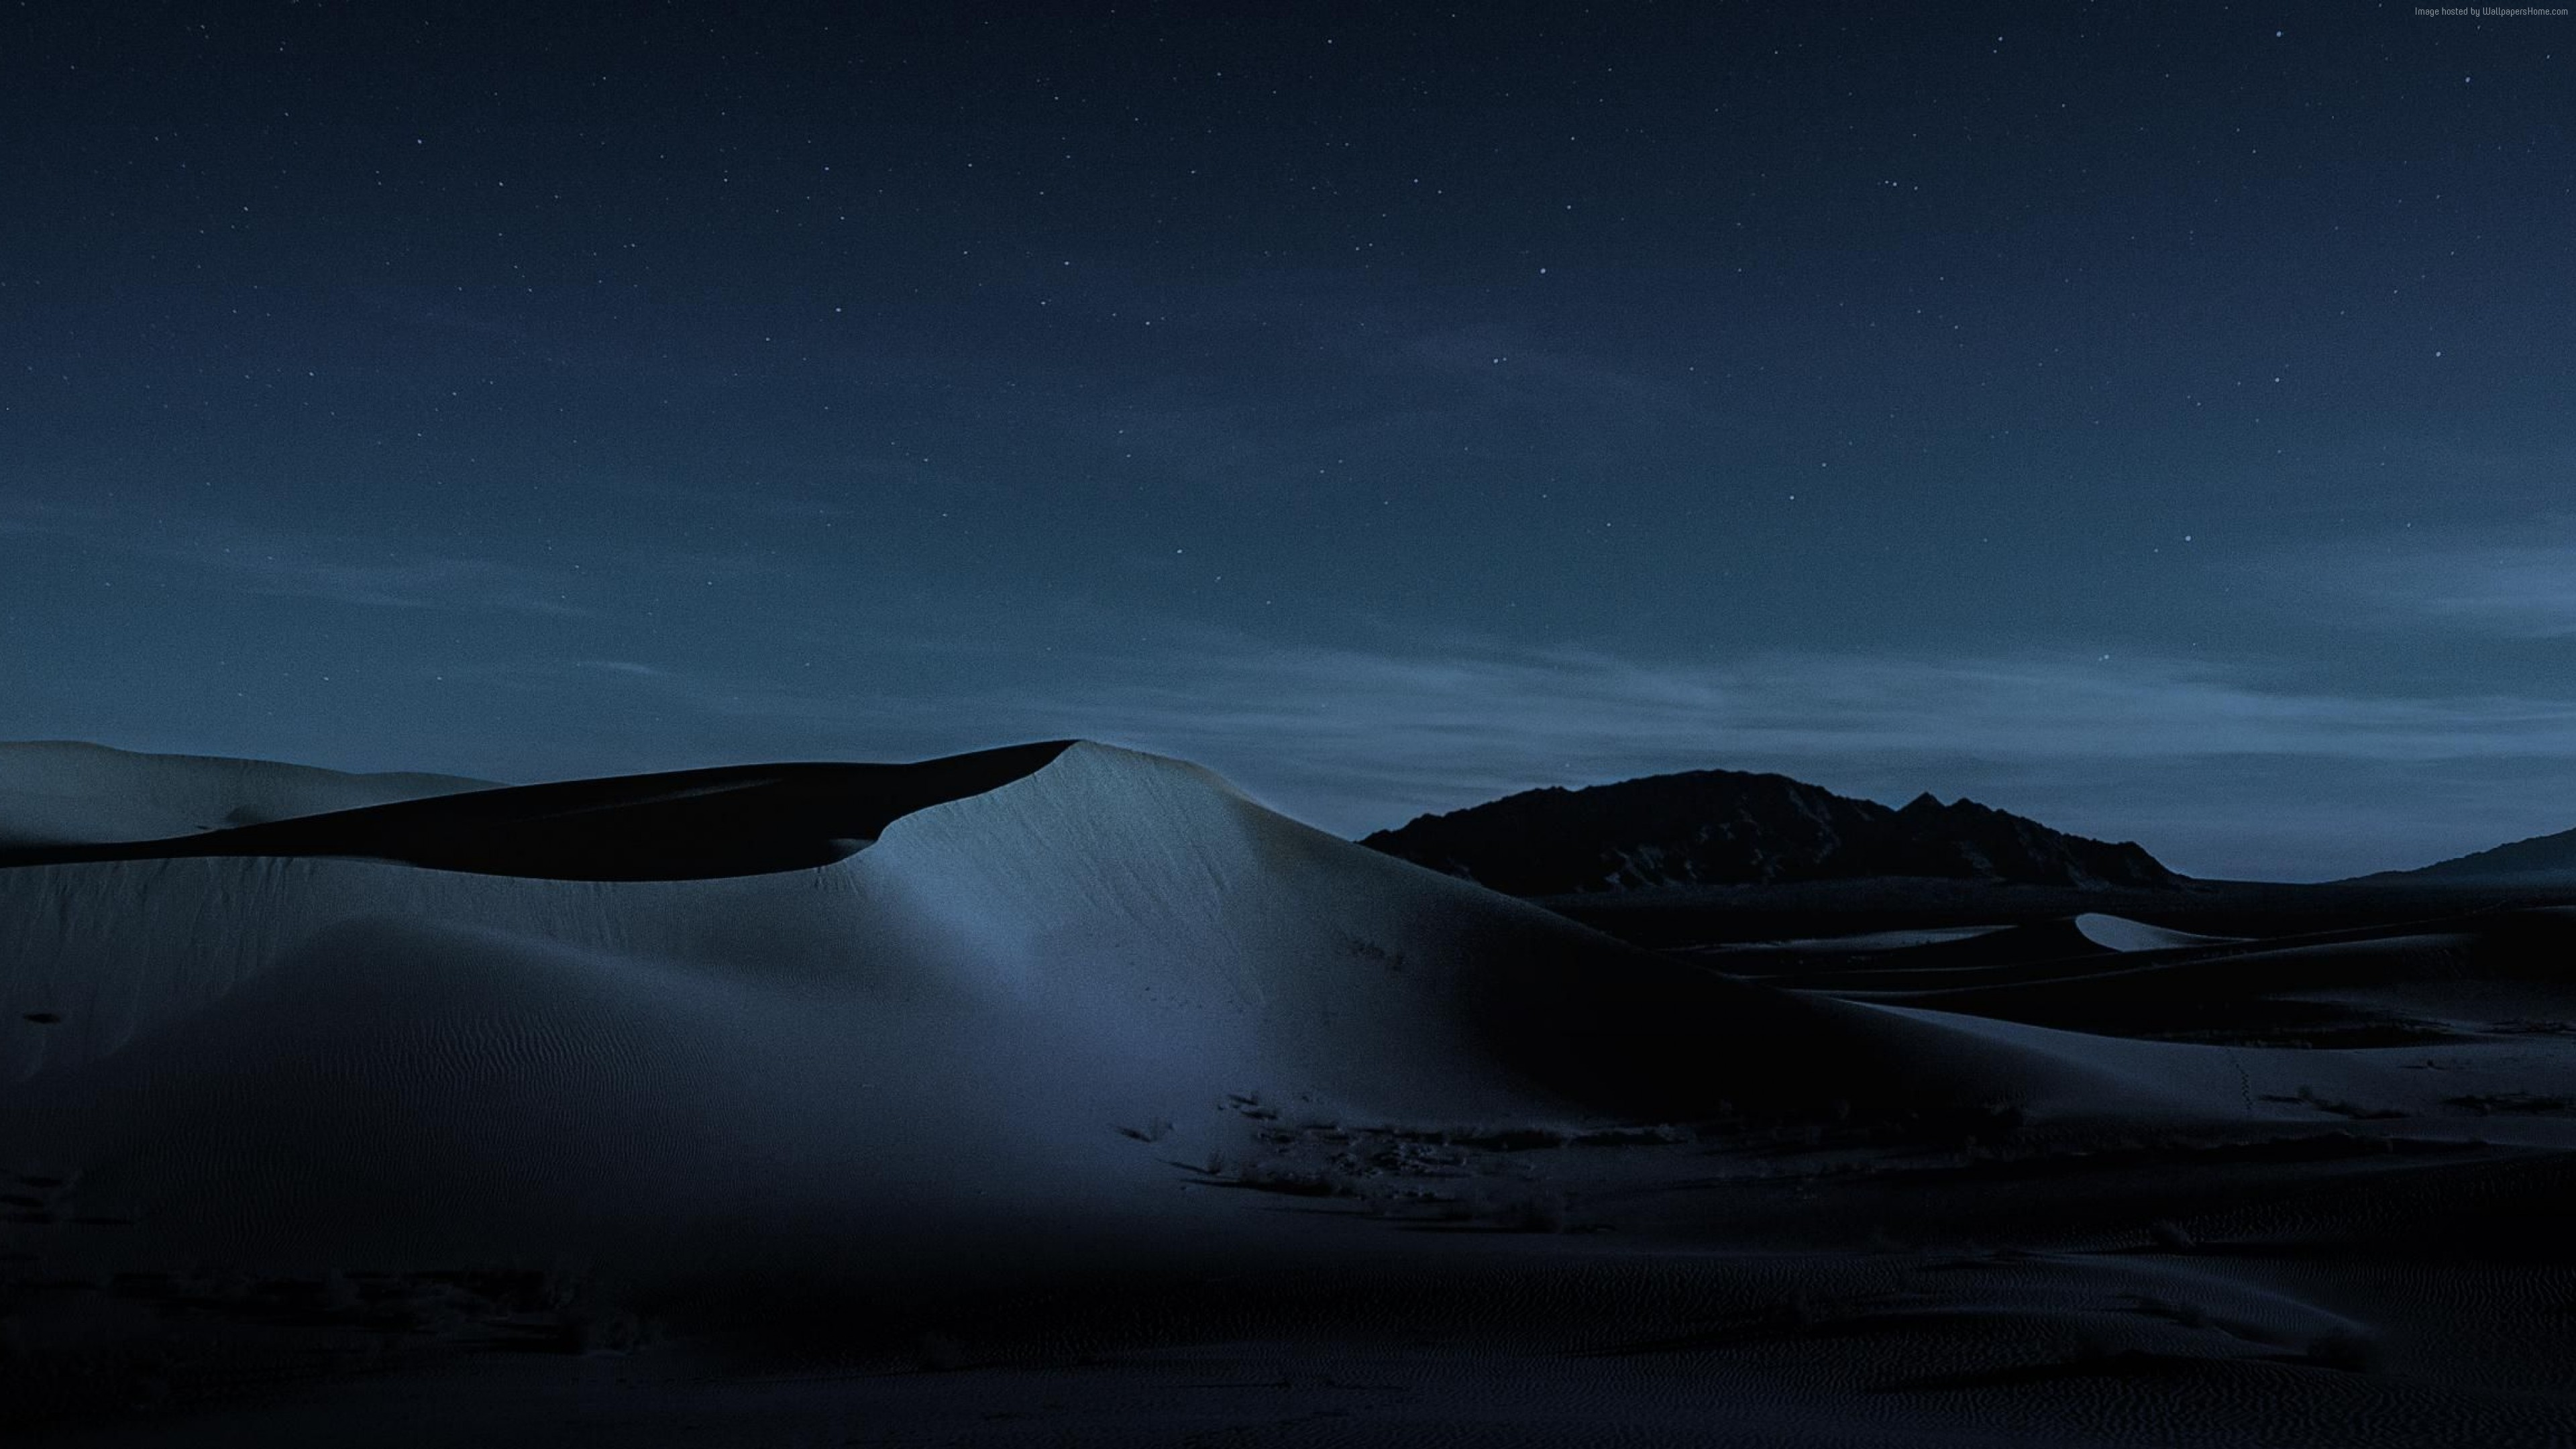 Wallpaper macOS Mojave, Night, Dunes, 4K, OS